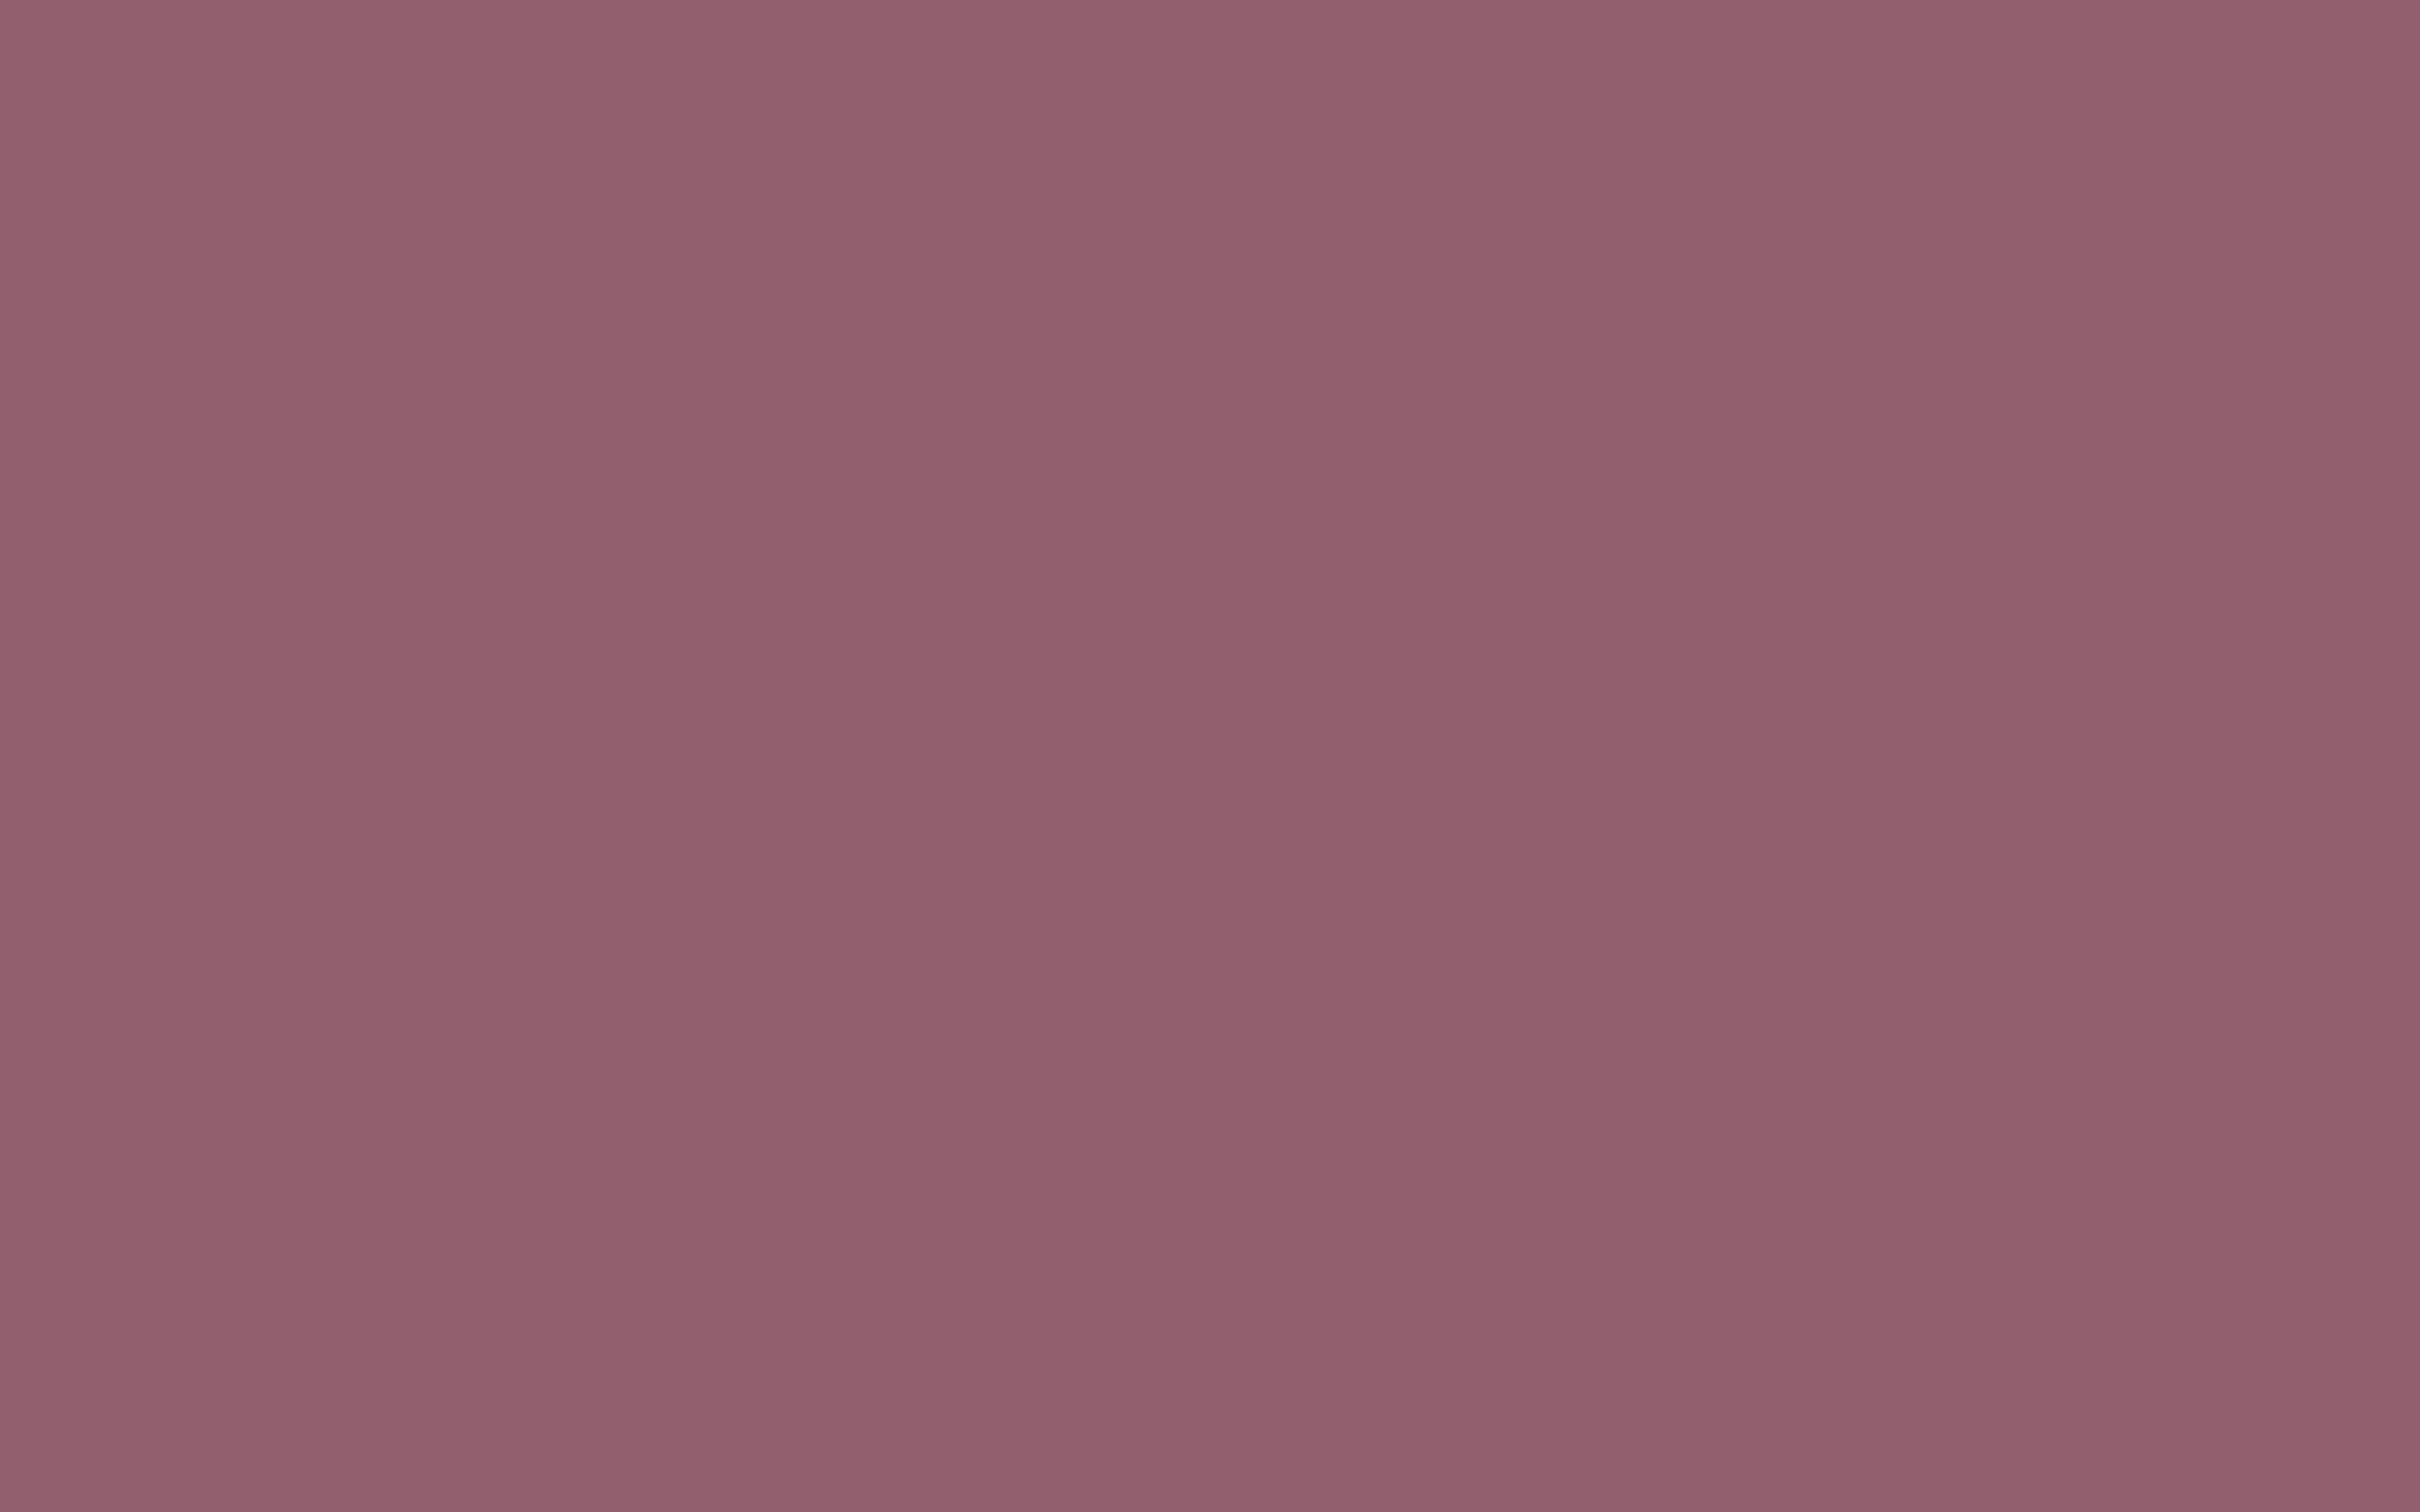 2880x1800 Mauve Taupe Solid Color Background